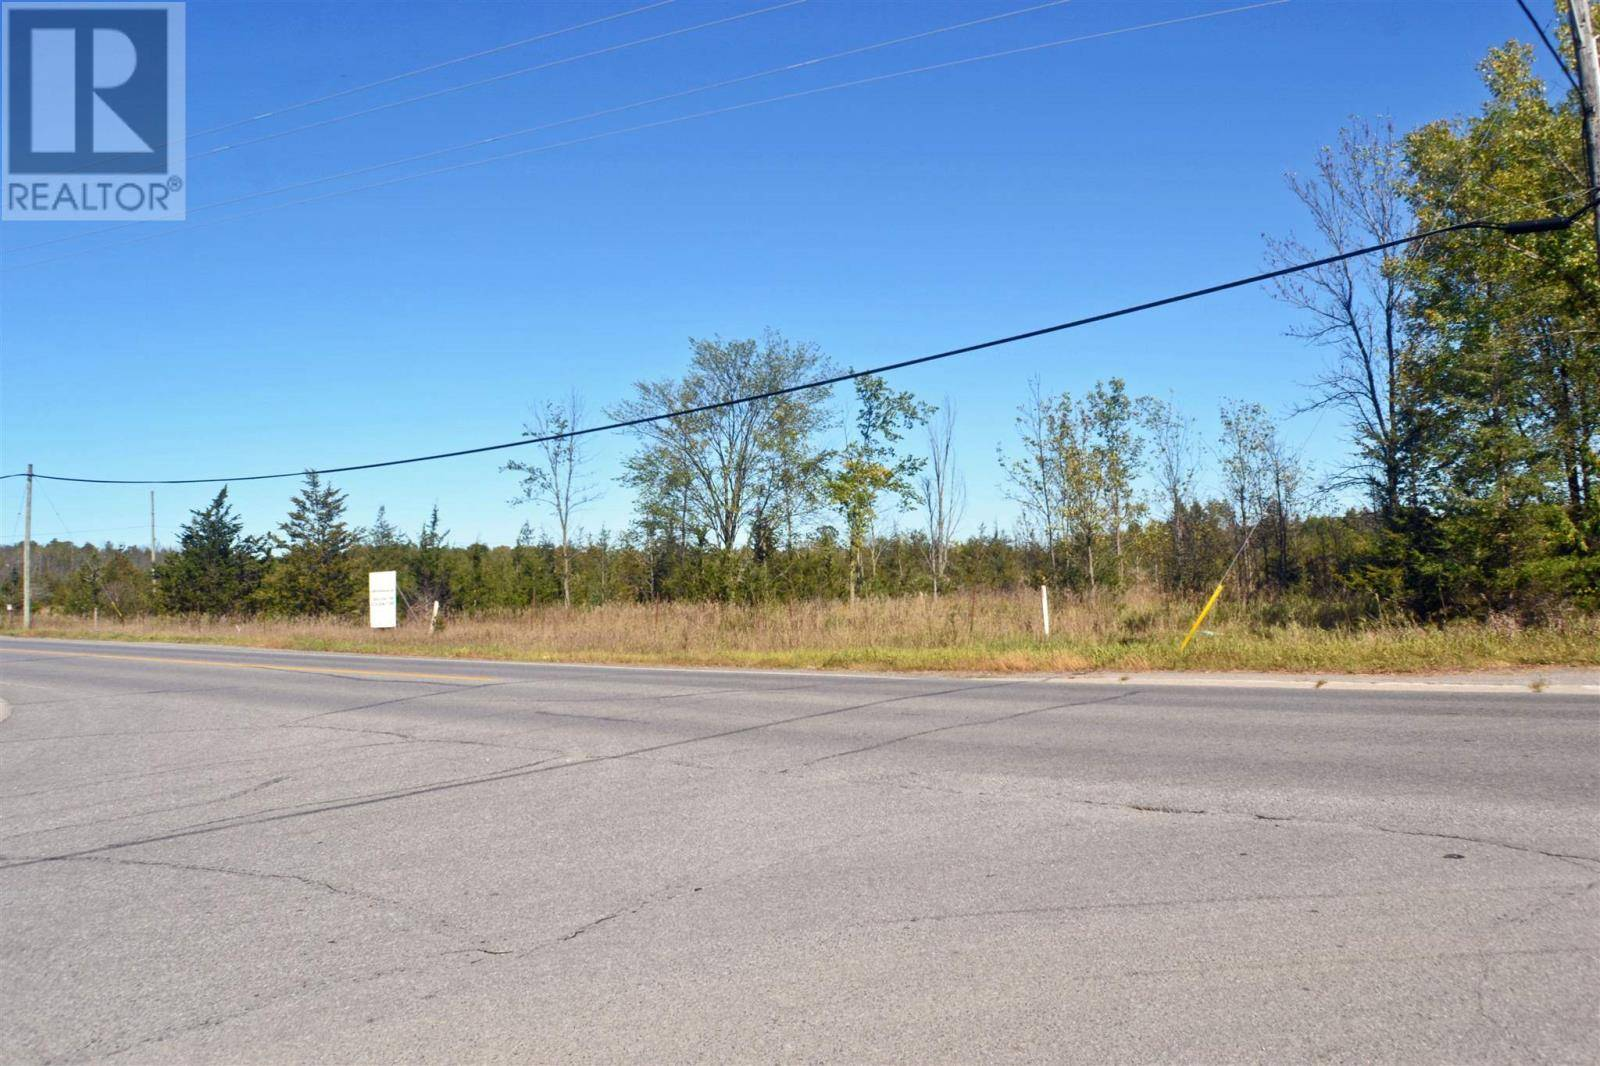 Home for sale at 521 Near 3275 Highway 41 Hy Unit Lot 521 Roblin Ontario - MLS: K19005034a